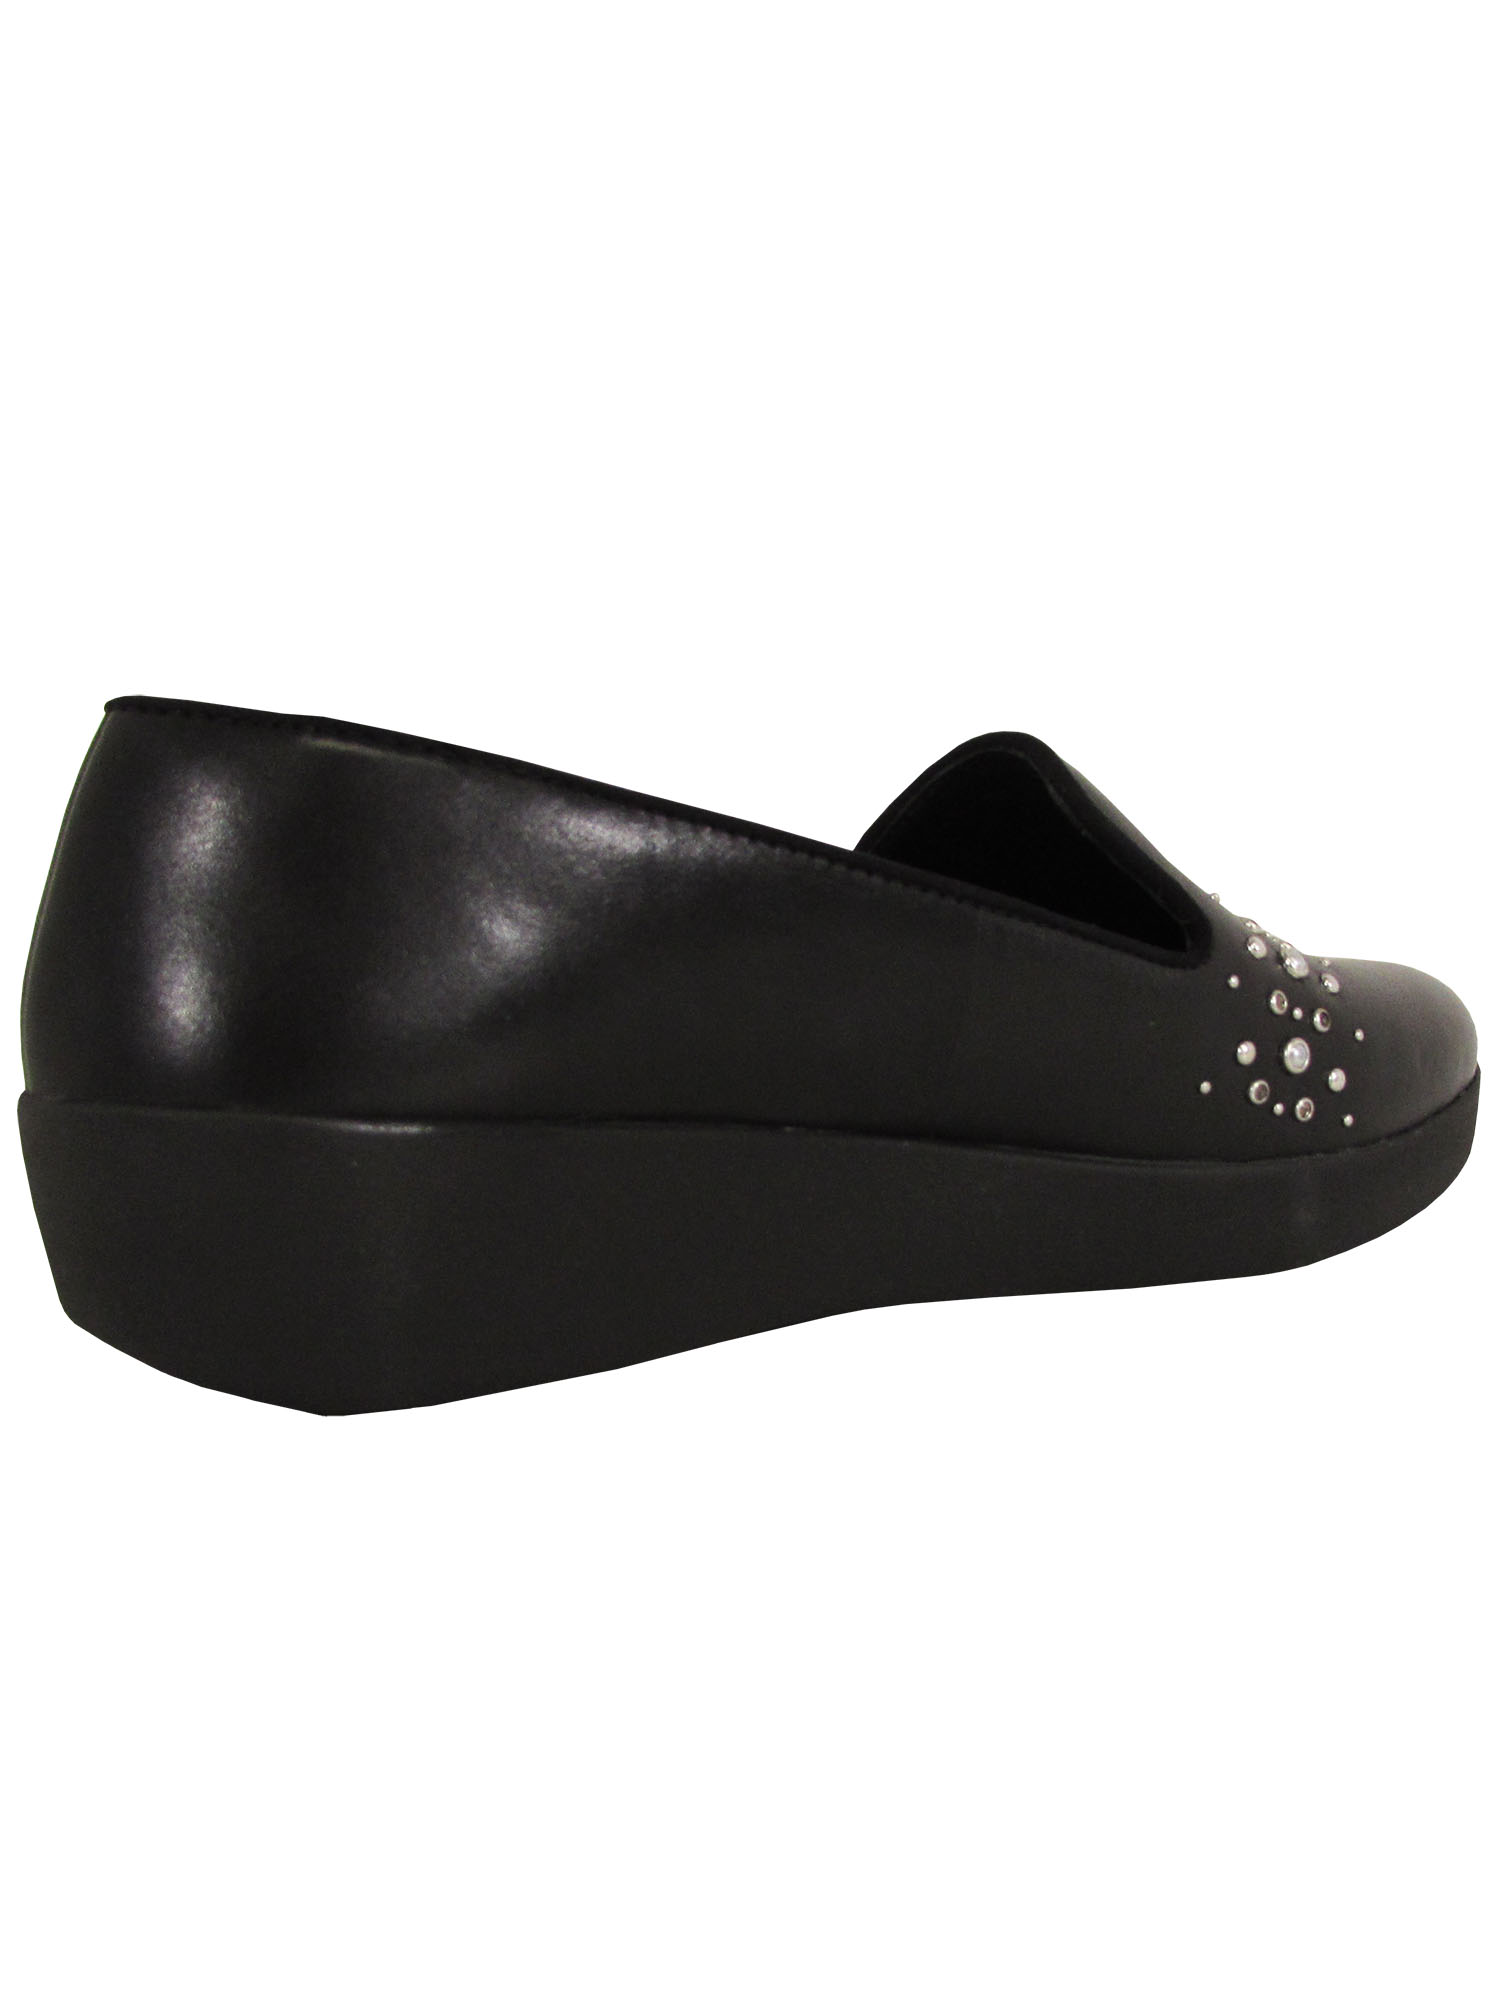 Fitflop-Womens-Audrey-Pearl-Stud-Smoking-Slipper-Shoes thumbnail 7